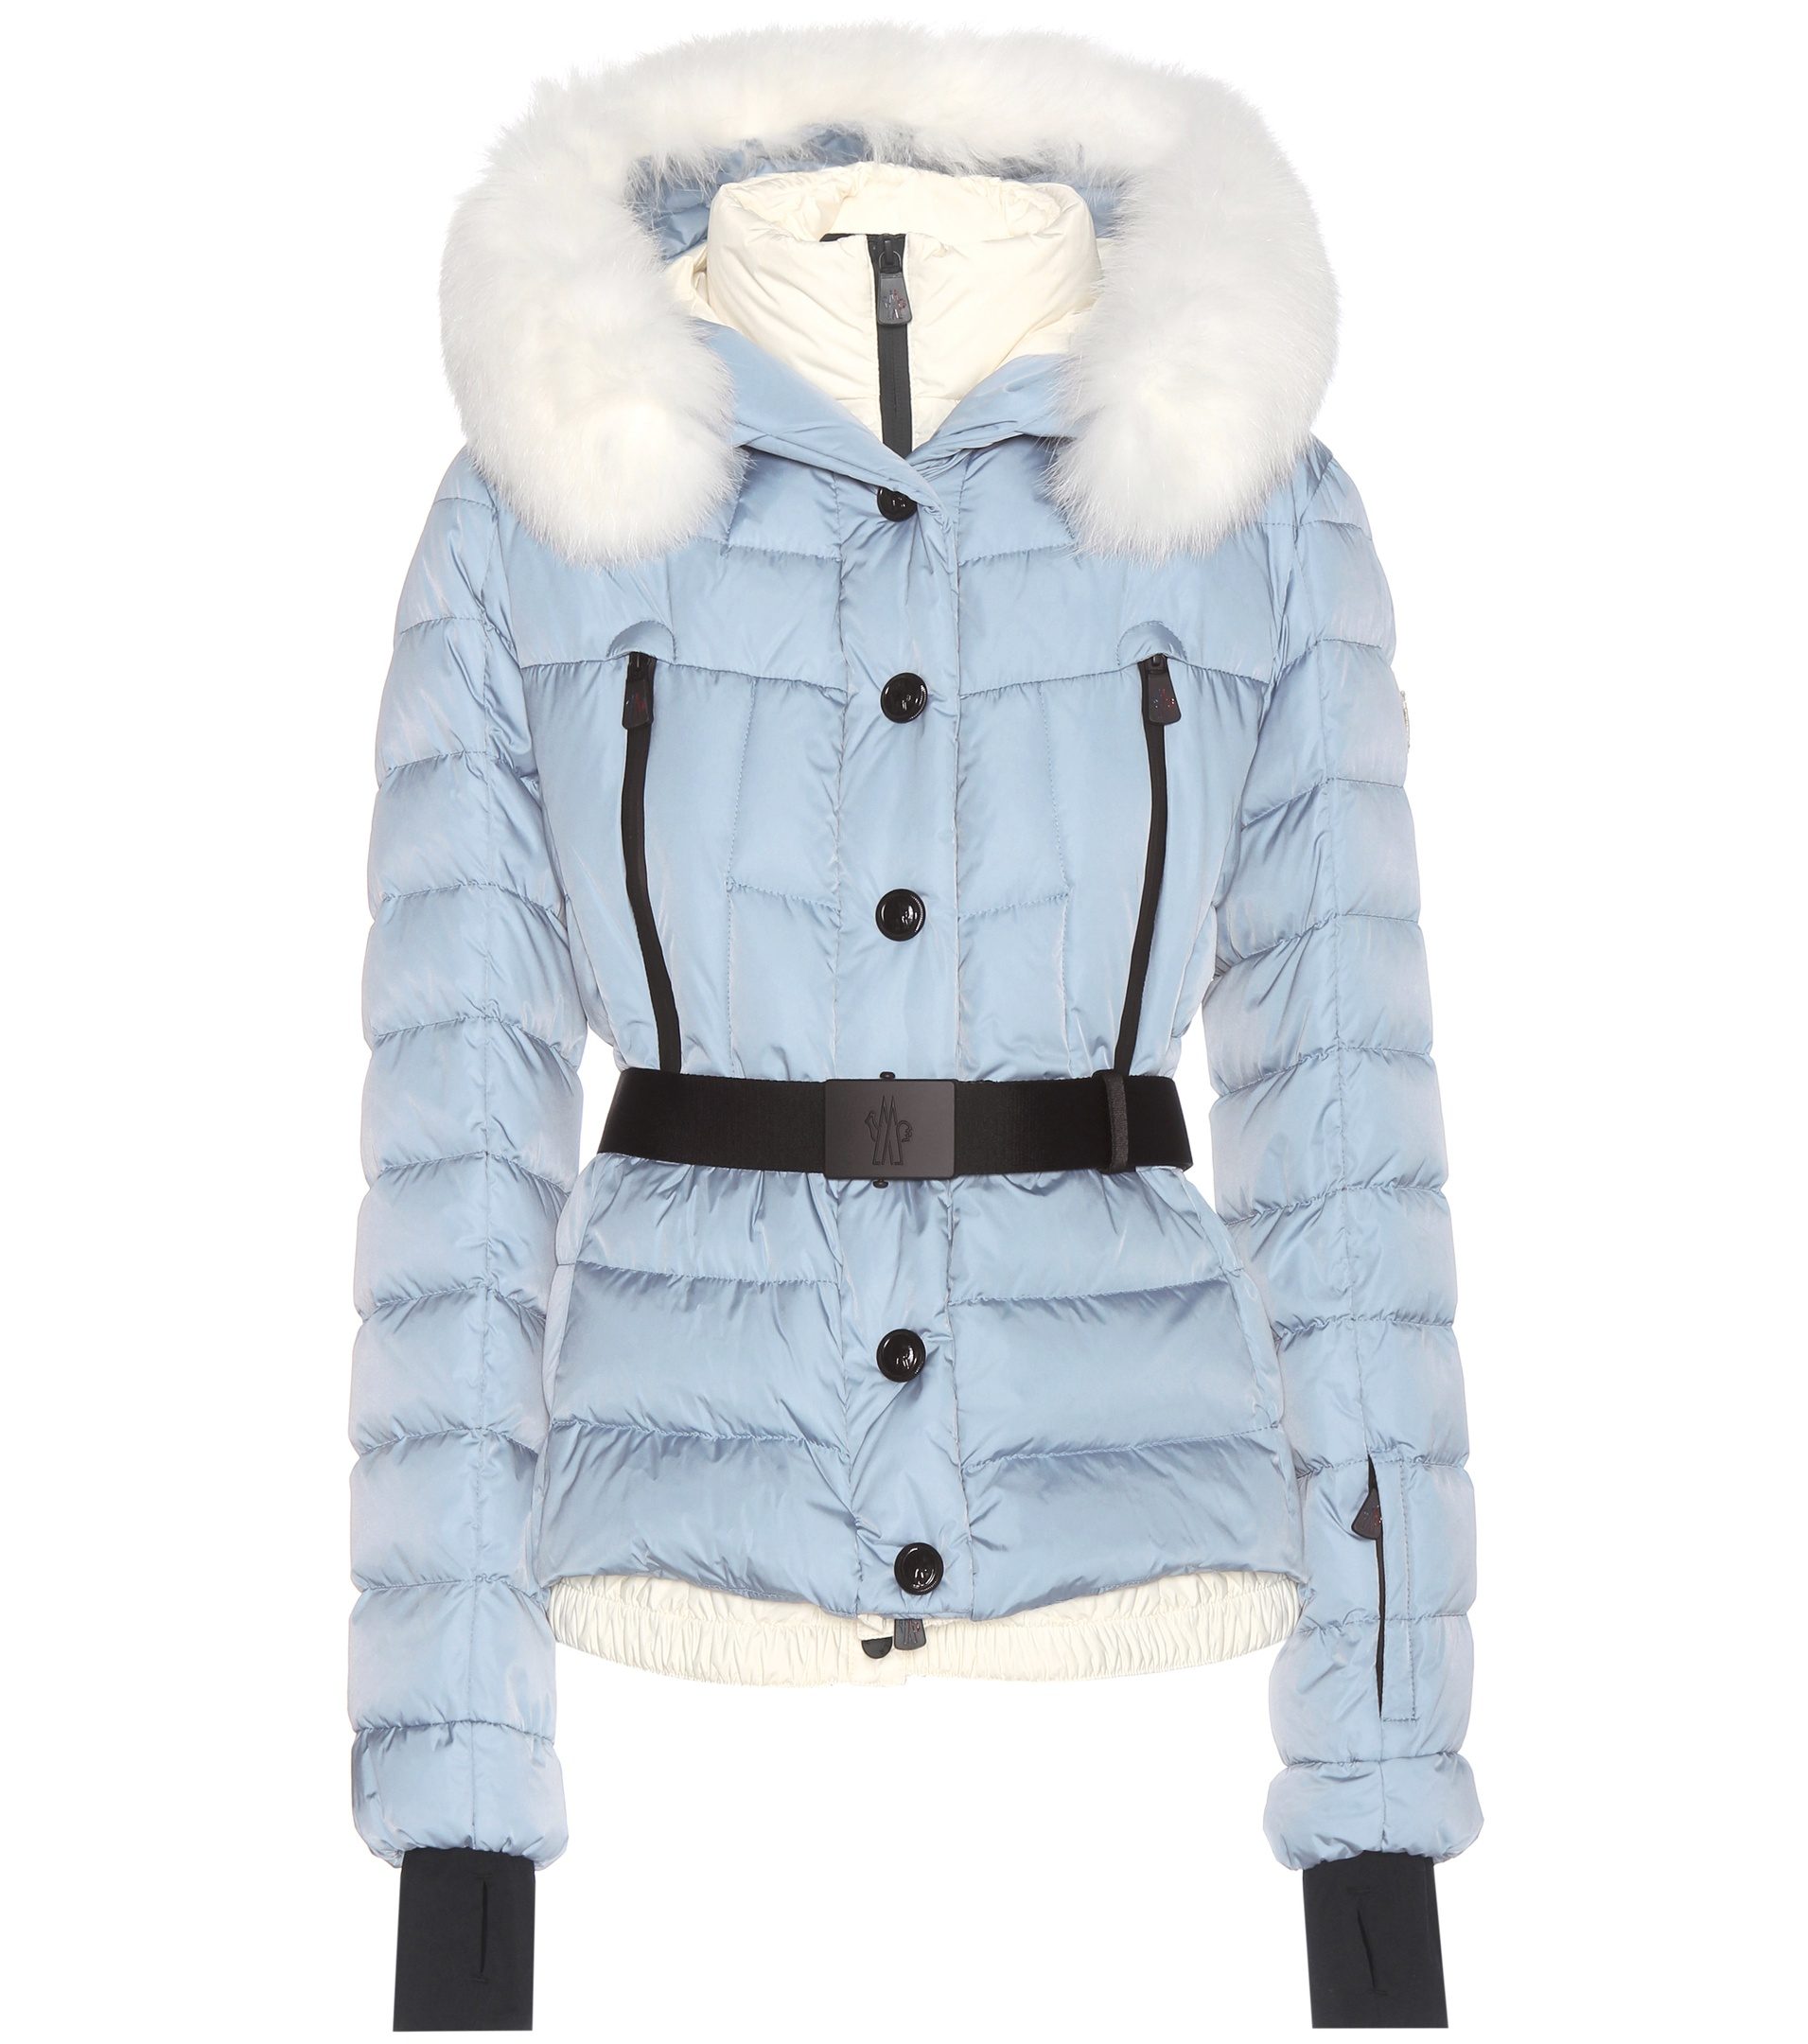 a4555d8a2 Lyst - Moncler Grenoble Beverley Fur-trimmed Down Jacket in Blue